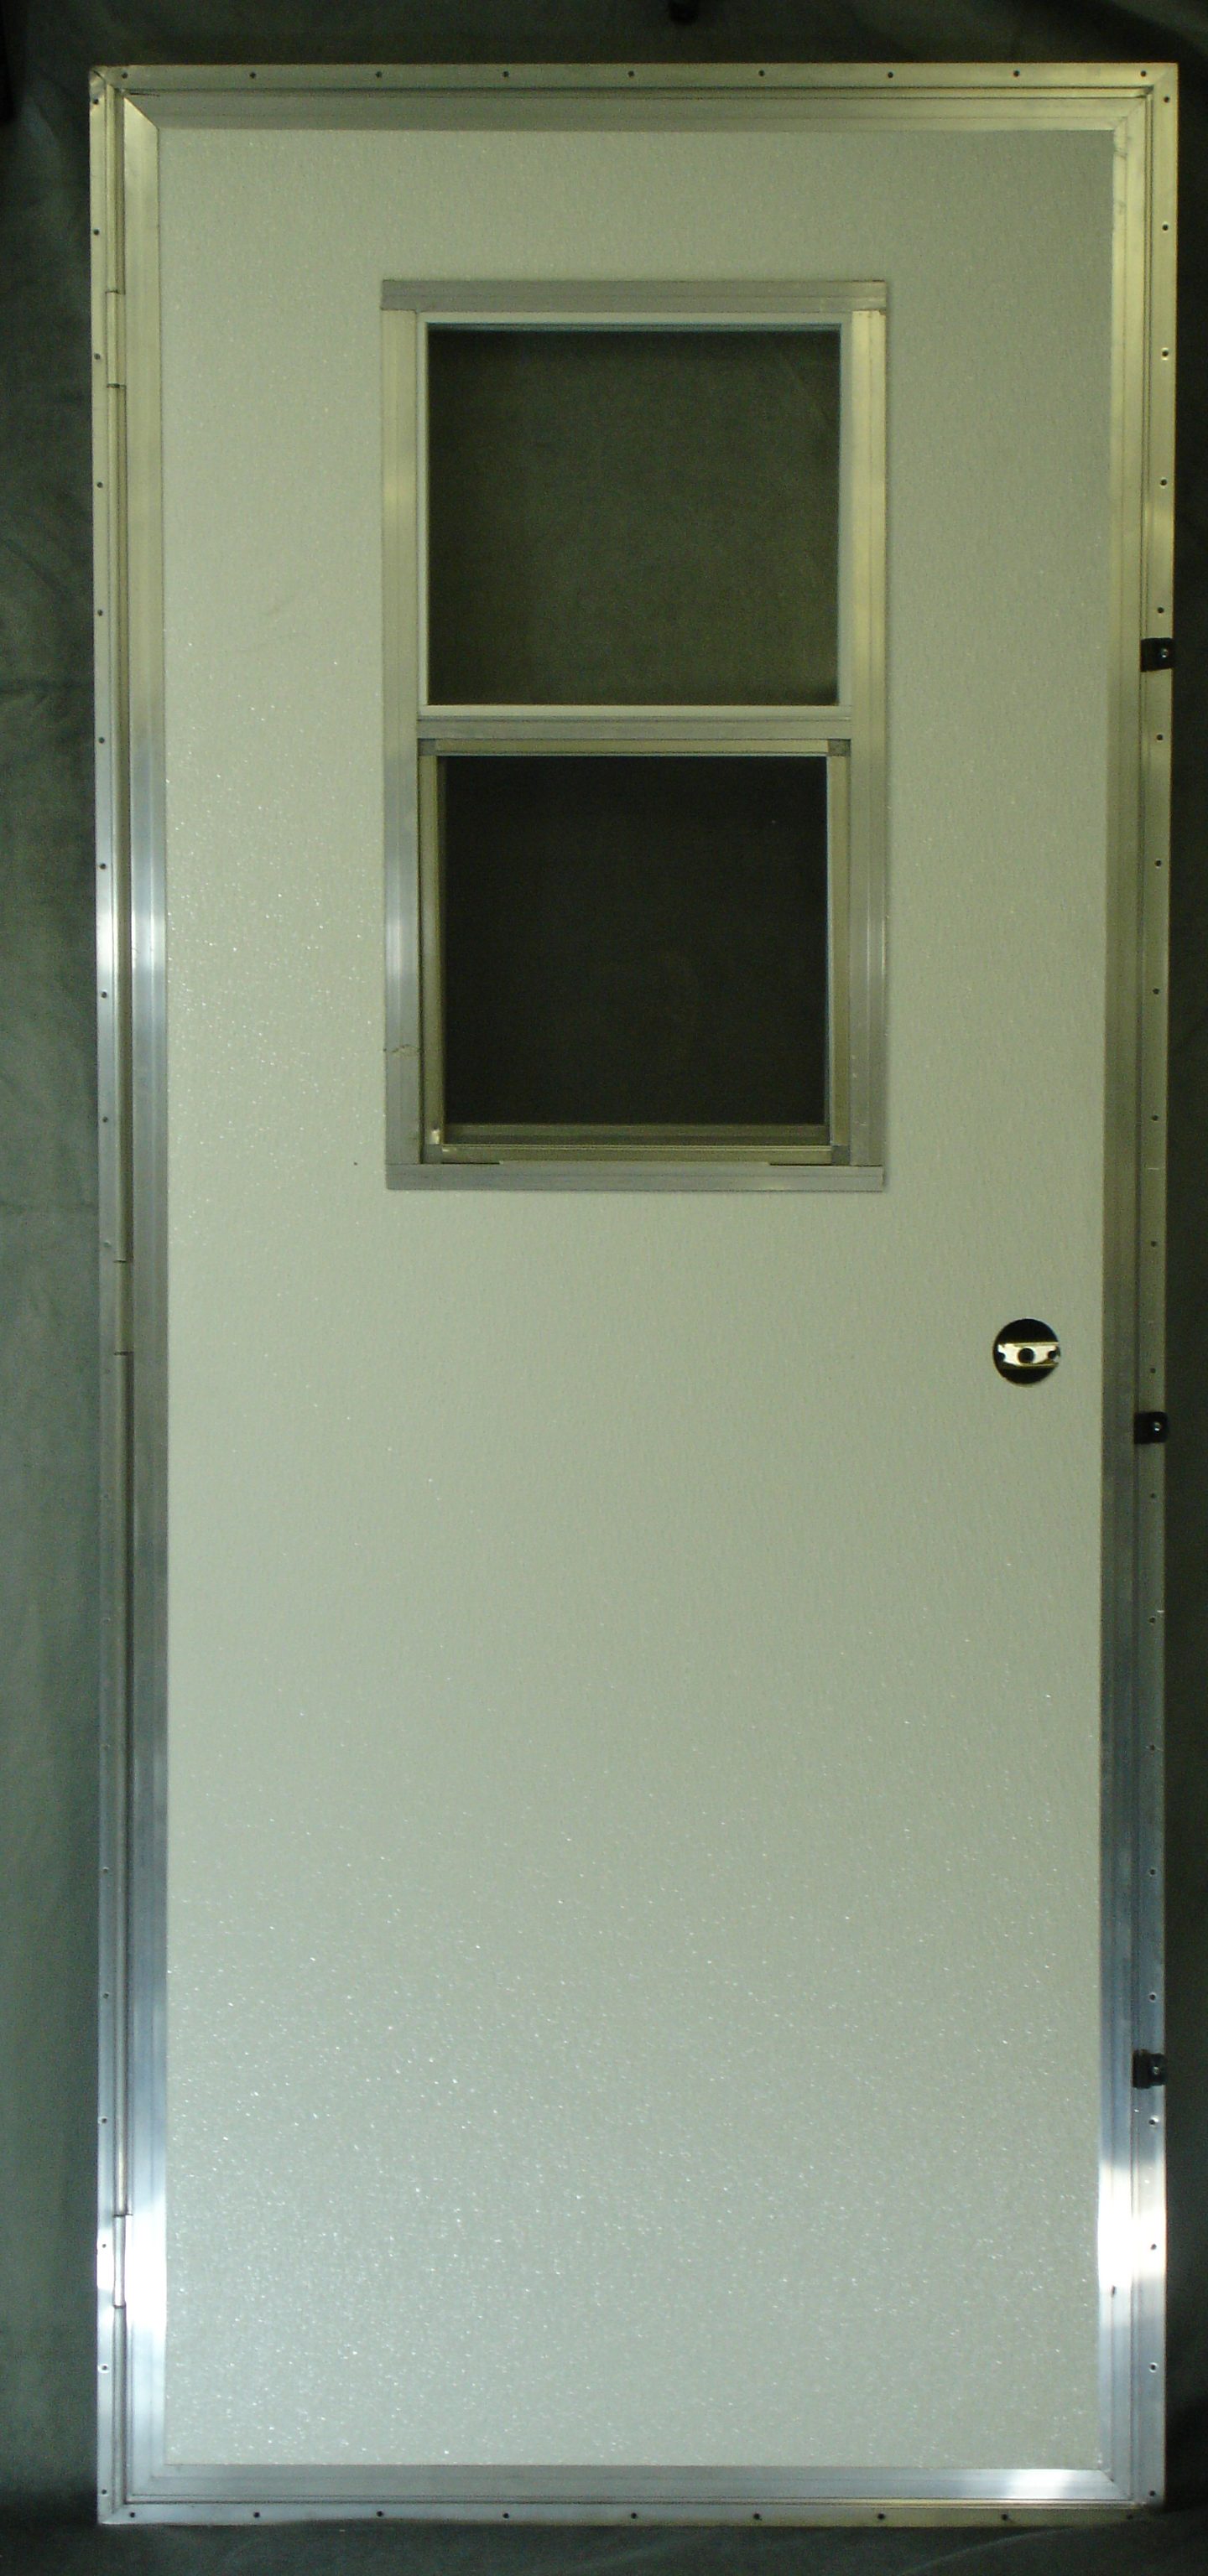 mobile home type door fiberglass royal durham supply